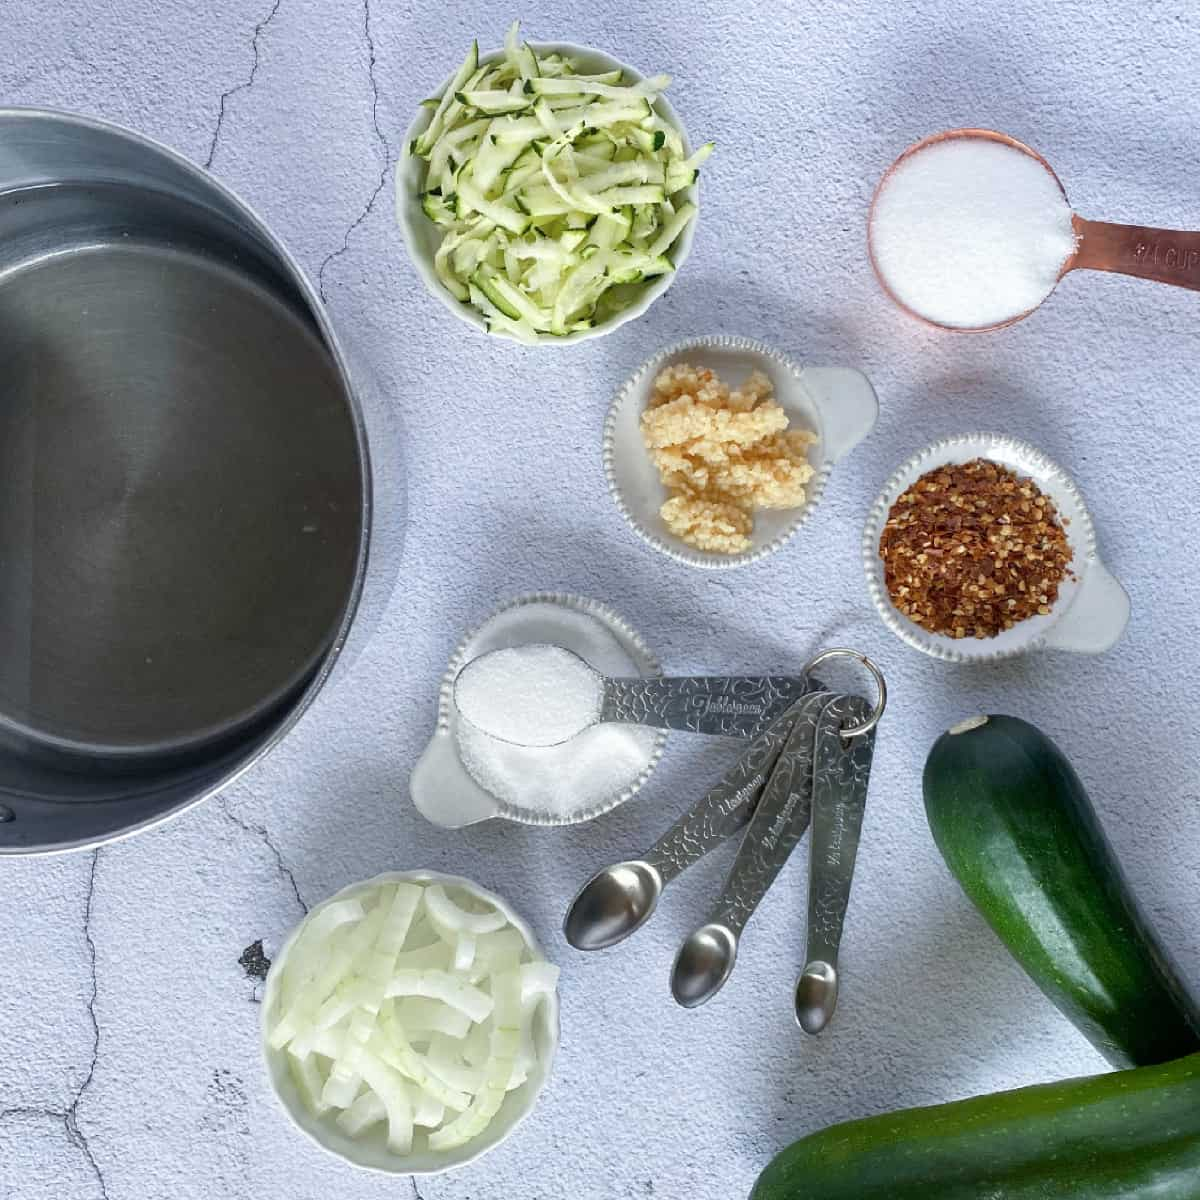 ingredients to make pickles zucchini including zucchini, sugar, salt, garlic, onions, and a pot of water and vinegar.